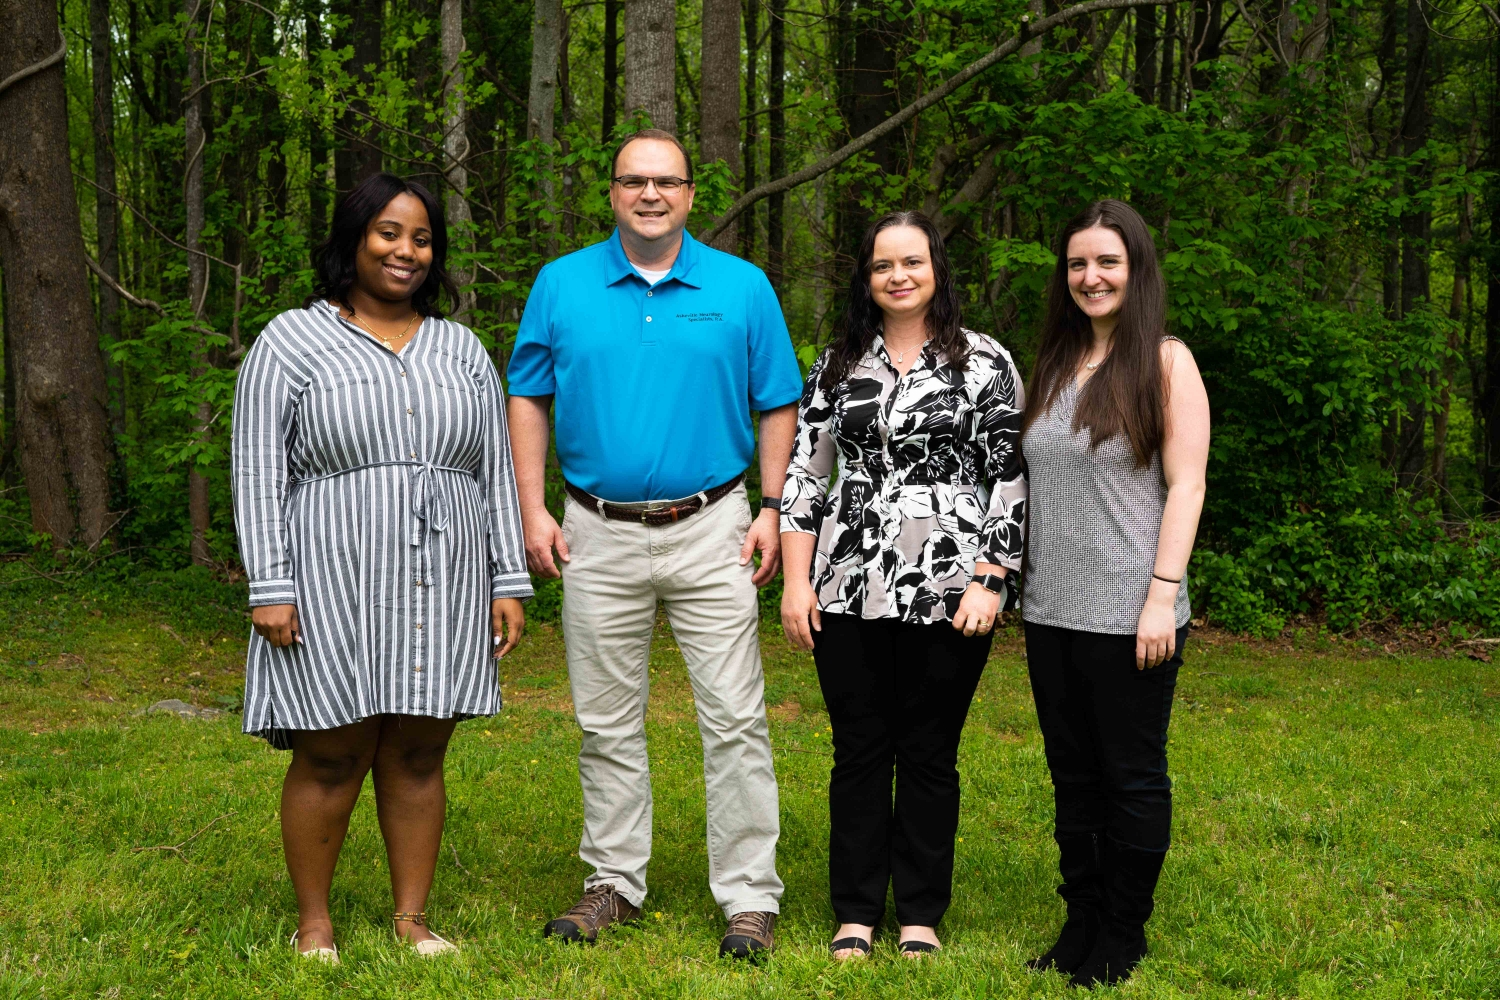 4 Members of Asheville Neurology Specialists Experience Department In Front of Trees